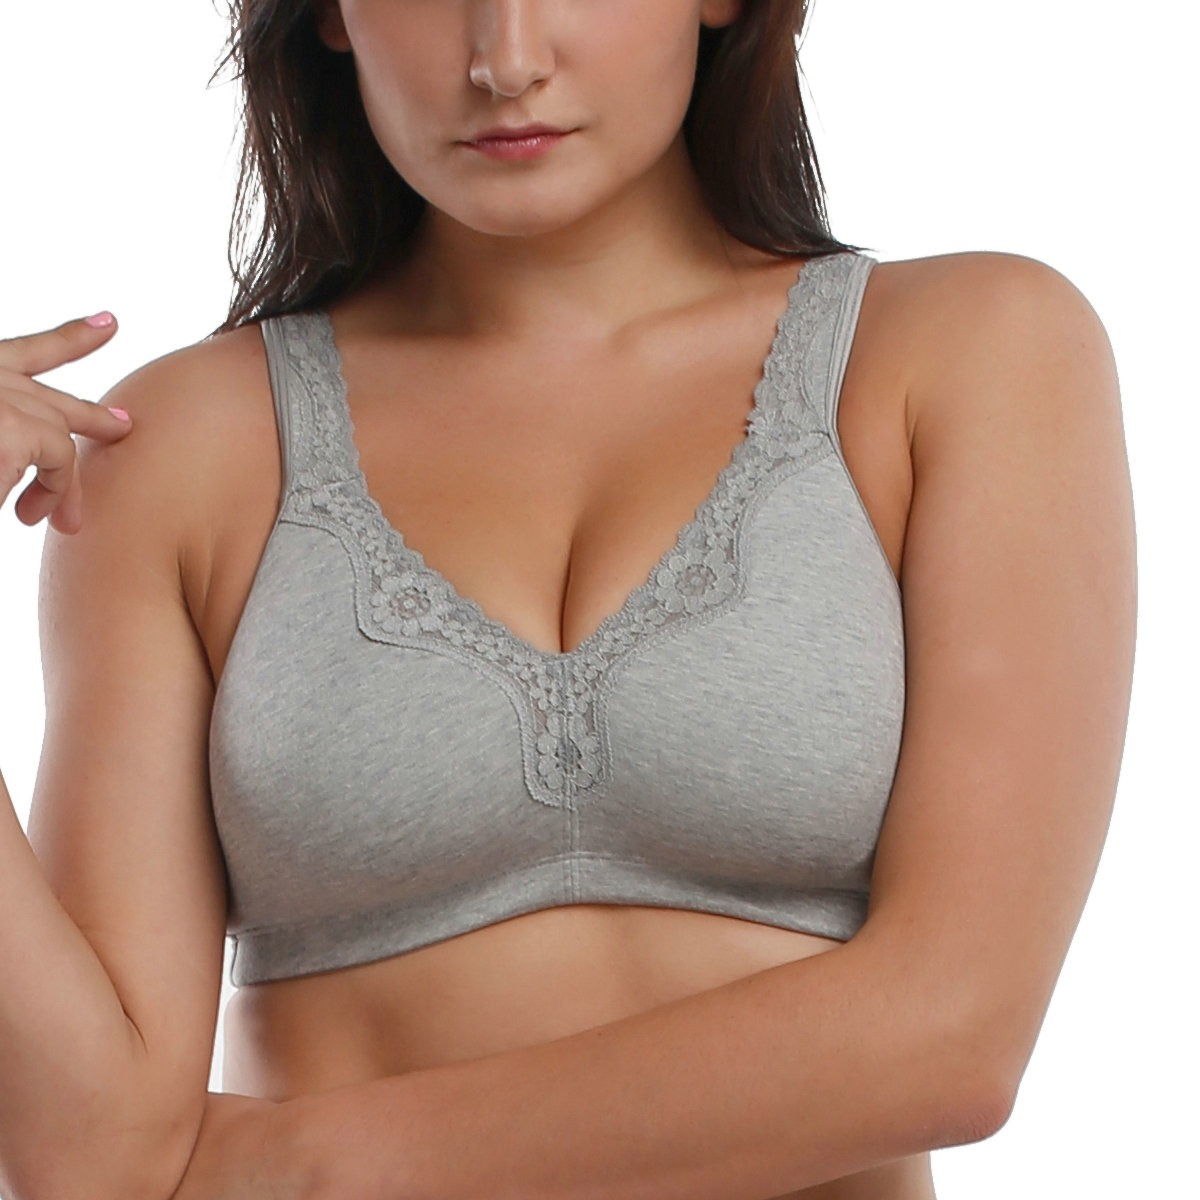 I am an odd size (32H), so it is hard to find bras that fit, that are comfortable. The only negative I can say it the straps tend to slip out on my shoulders when wearing tank tops, I think where the straps connect to the band are further out than most bras.